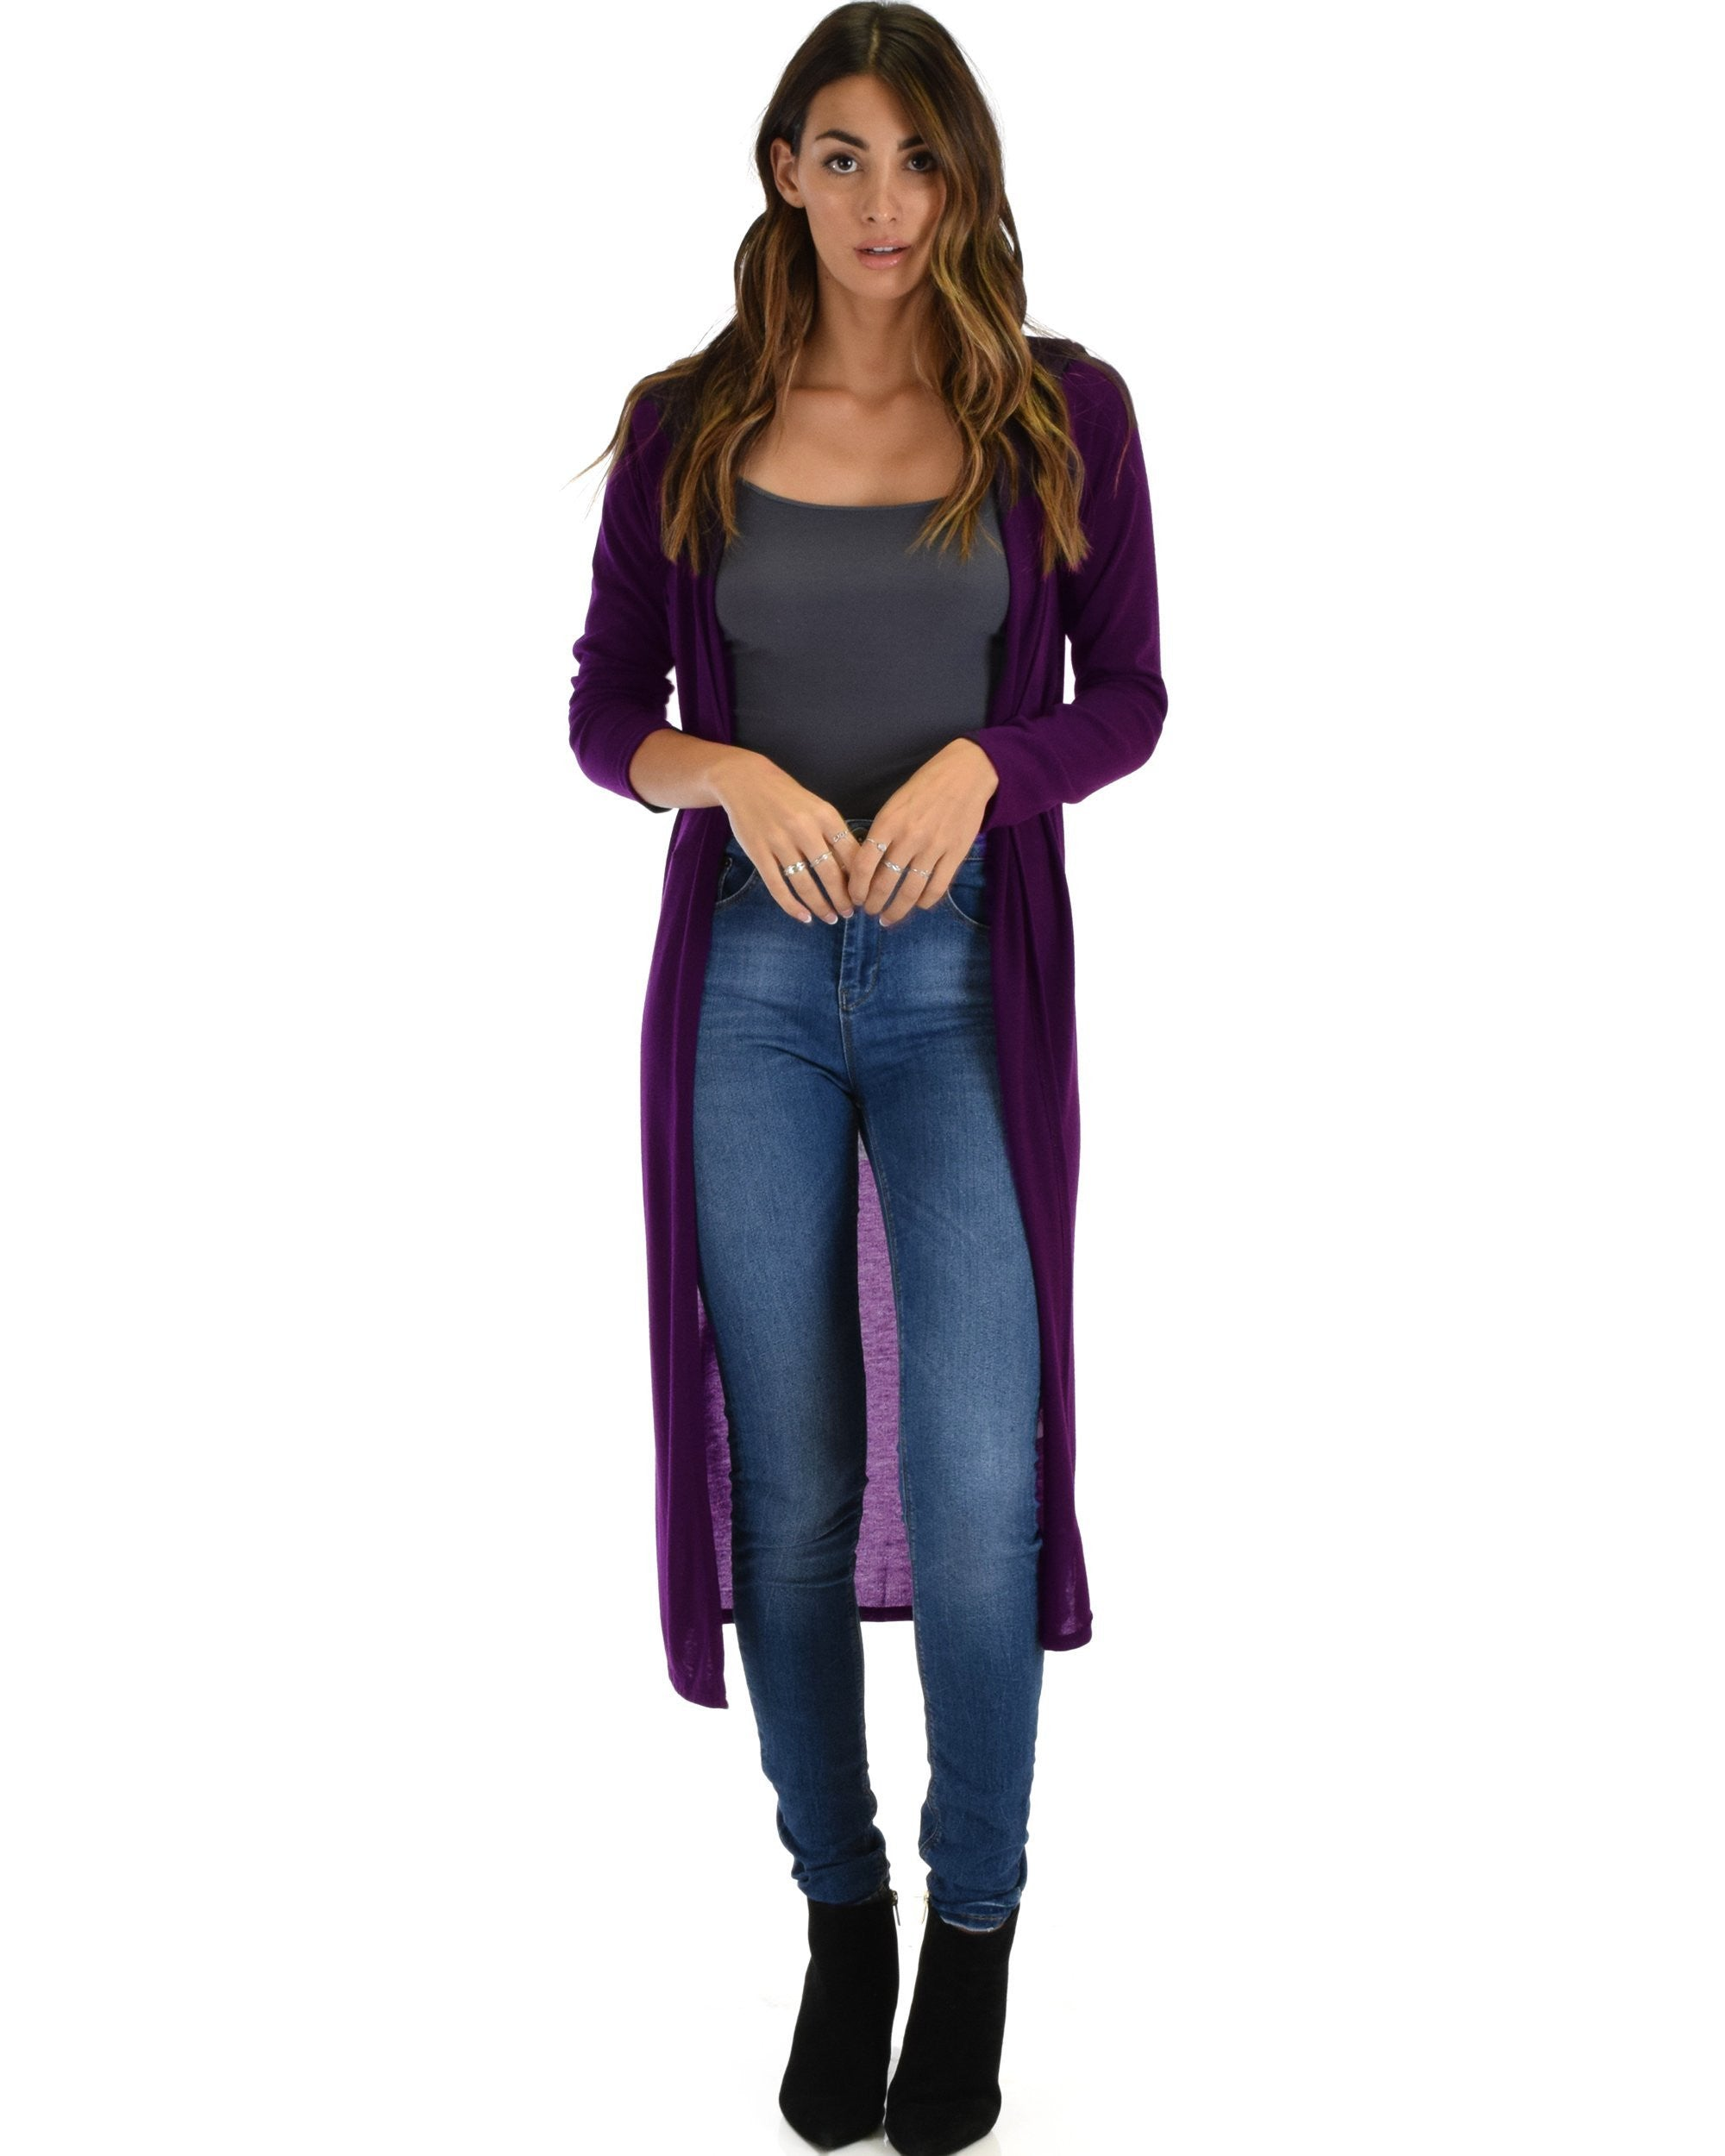 Cover Me Up Long-line Hooded Cardigan made in usa